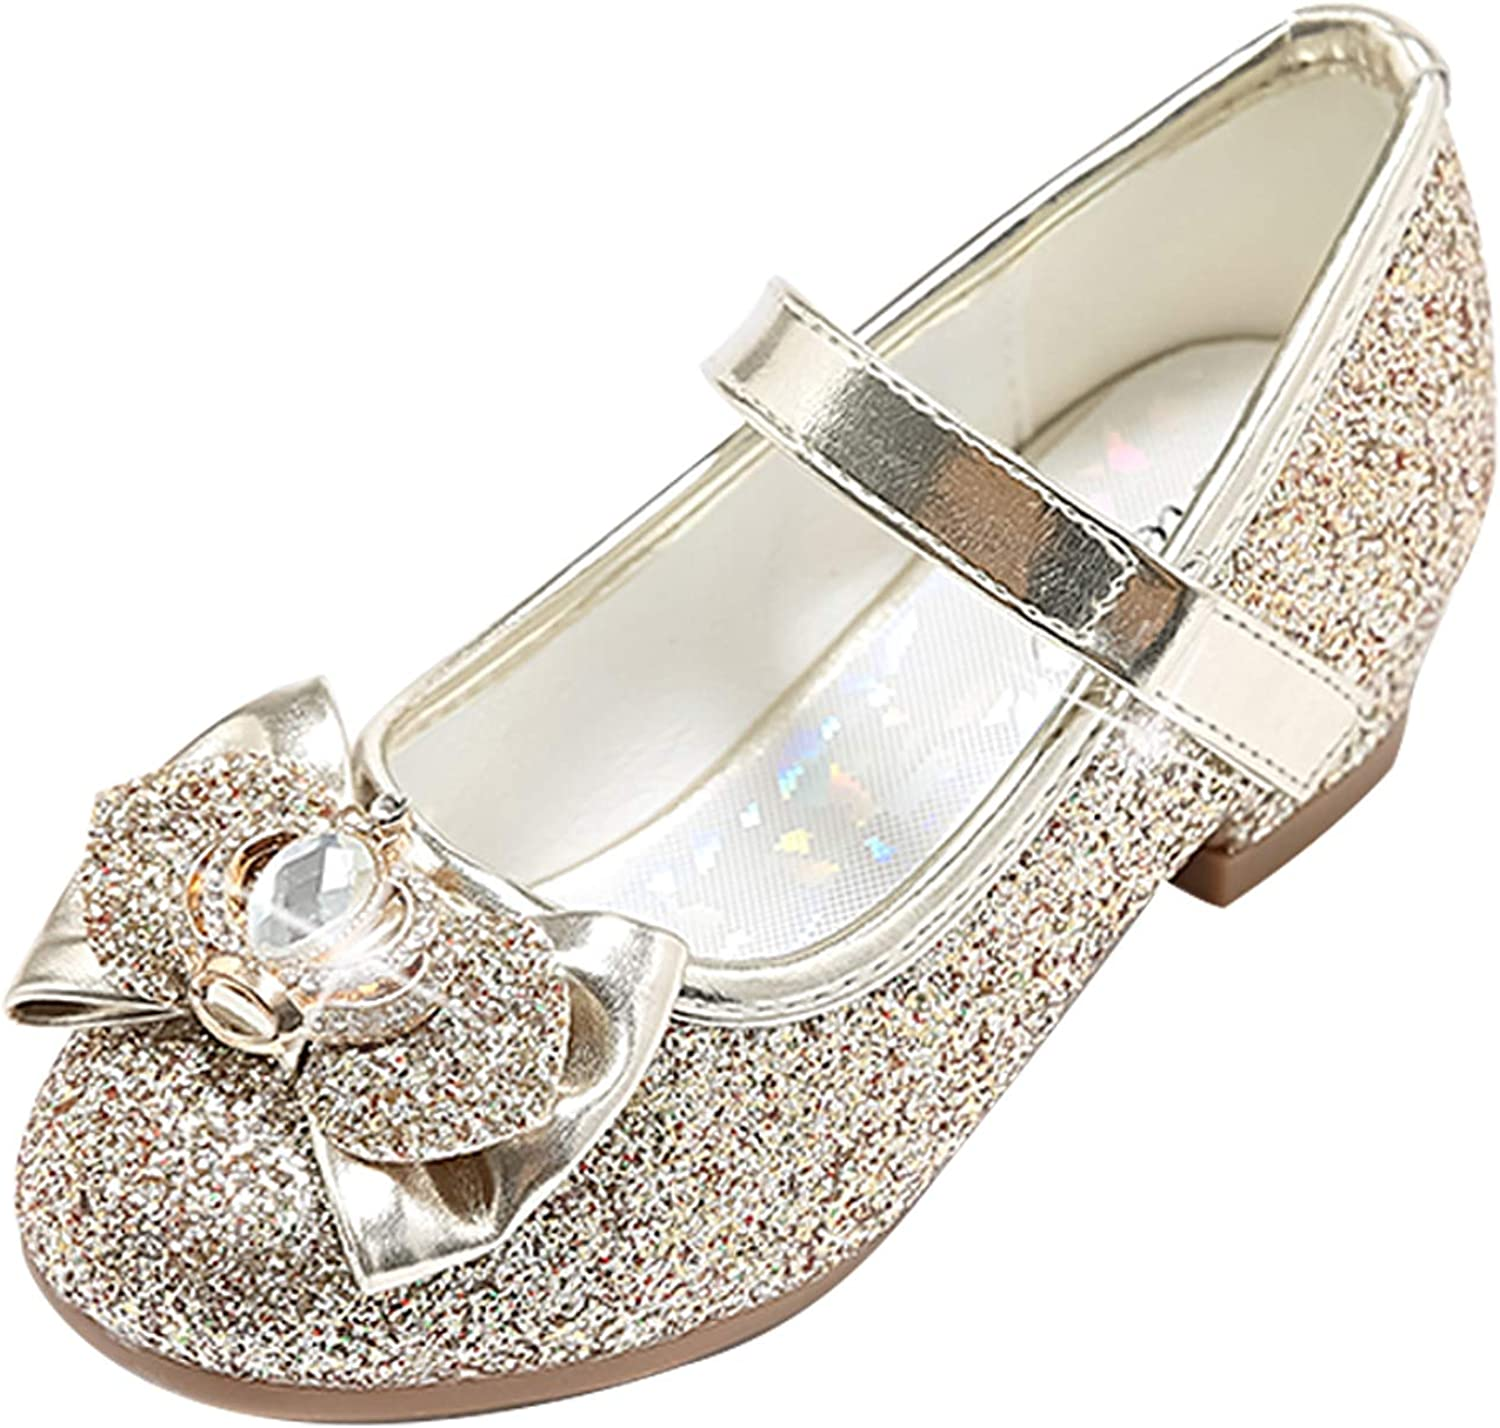 STELLE Girls Mary Jane Glitter Shoes Low Heel Princess Flower Wedding Party Dress Pump Shoes for Kids Toddler